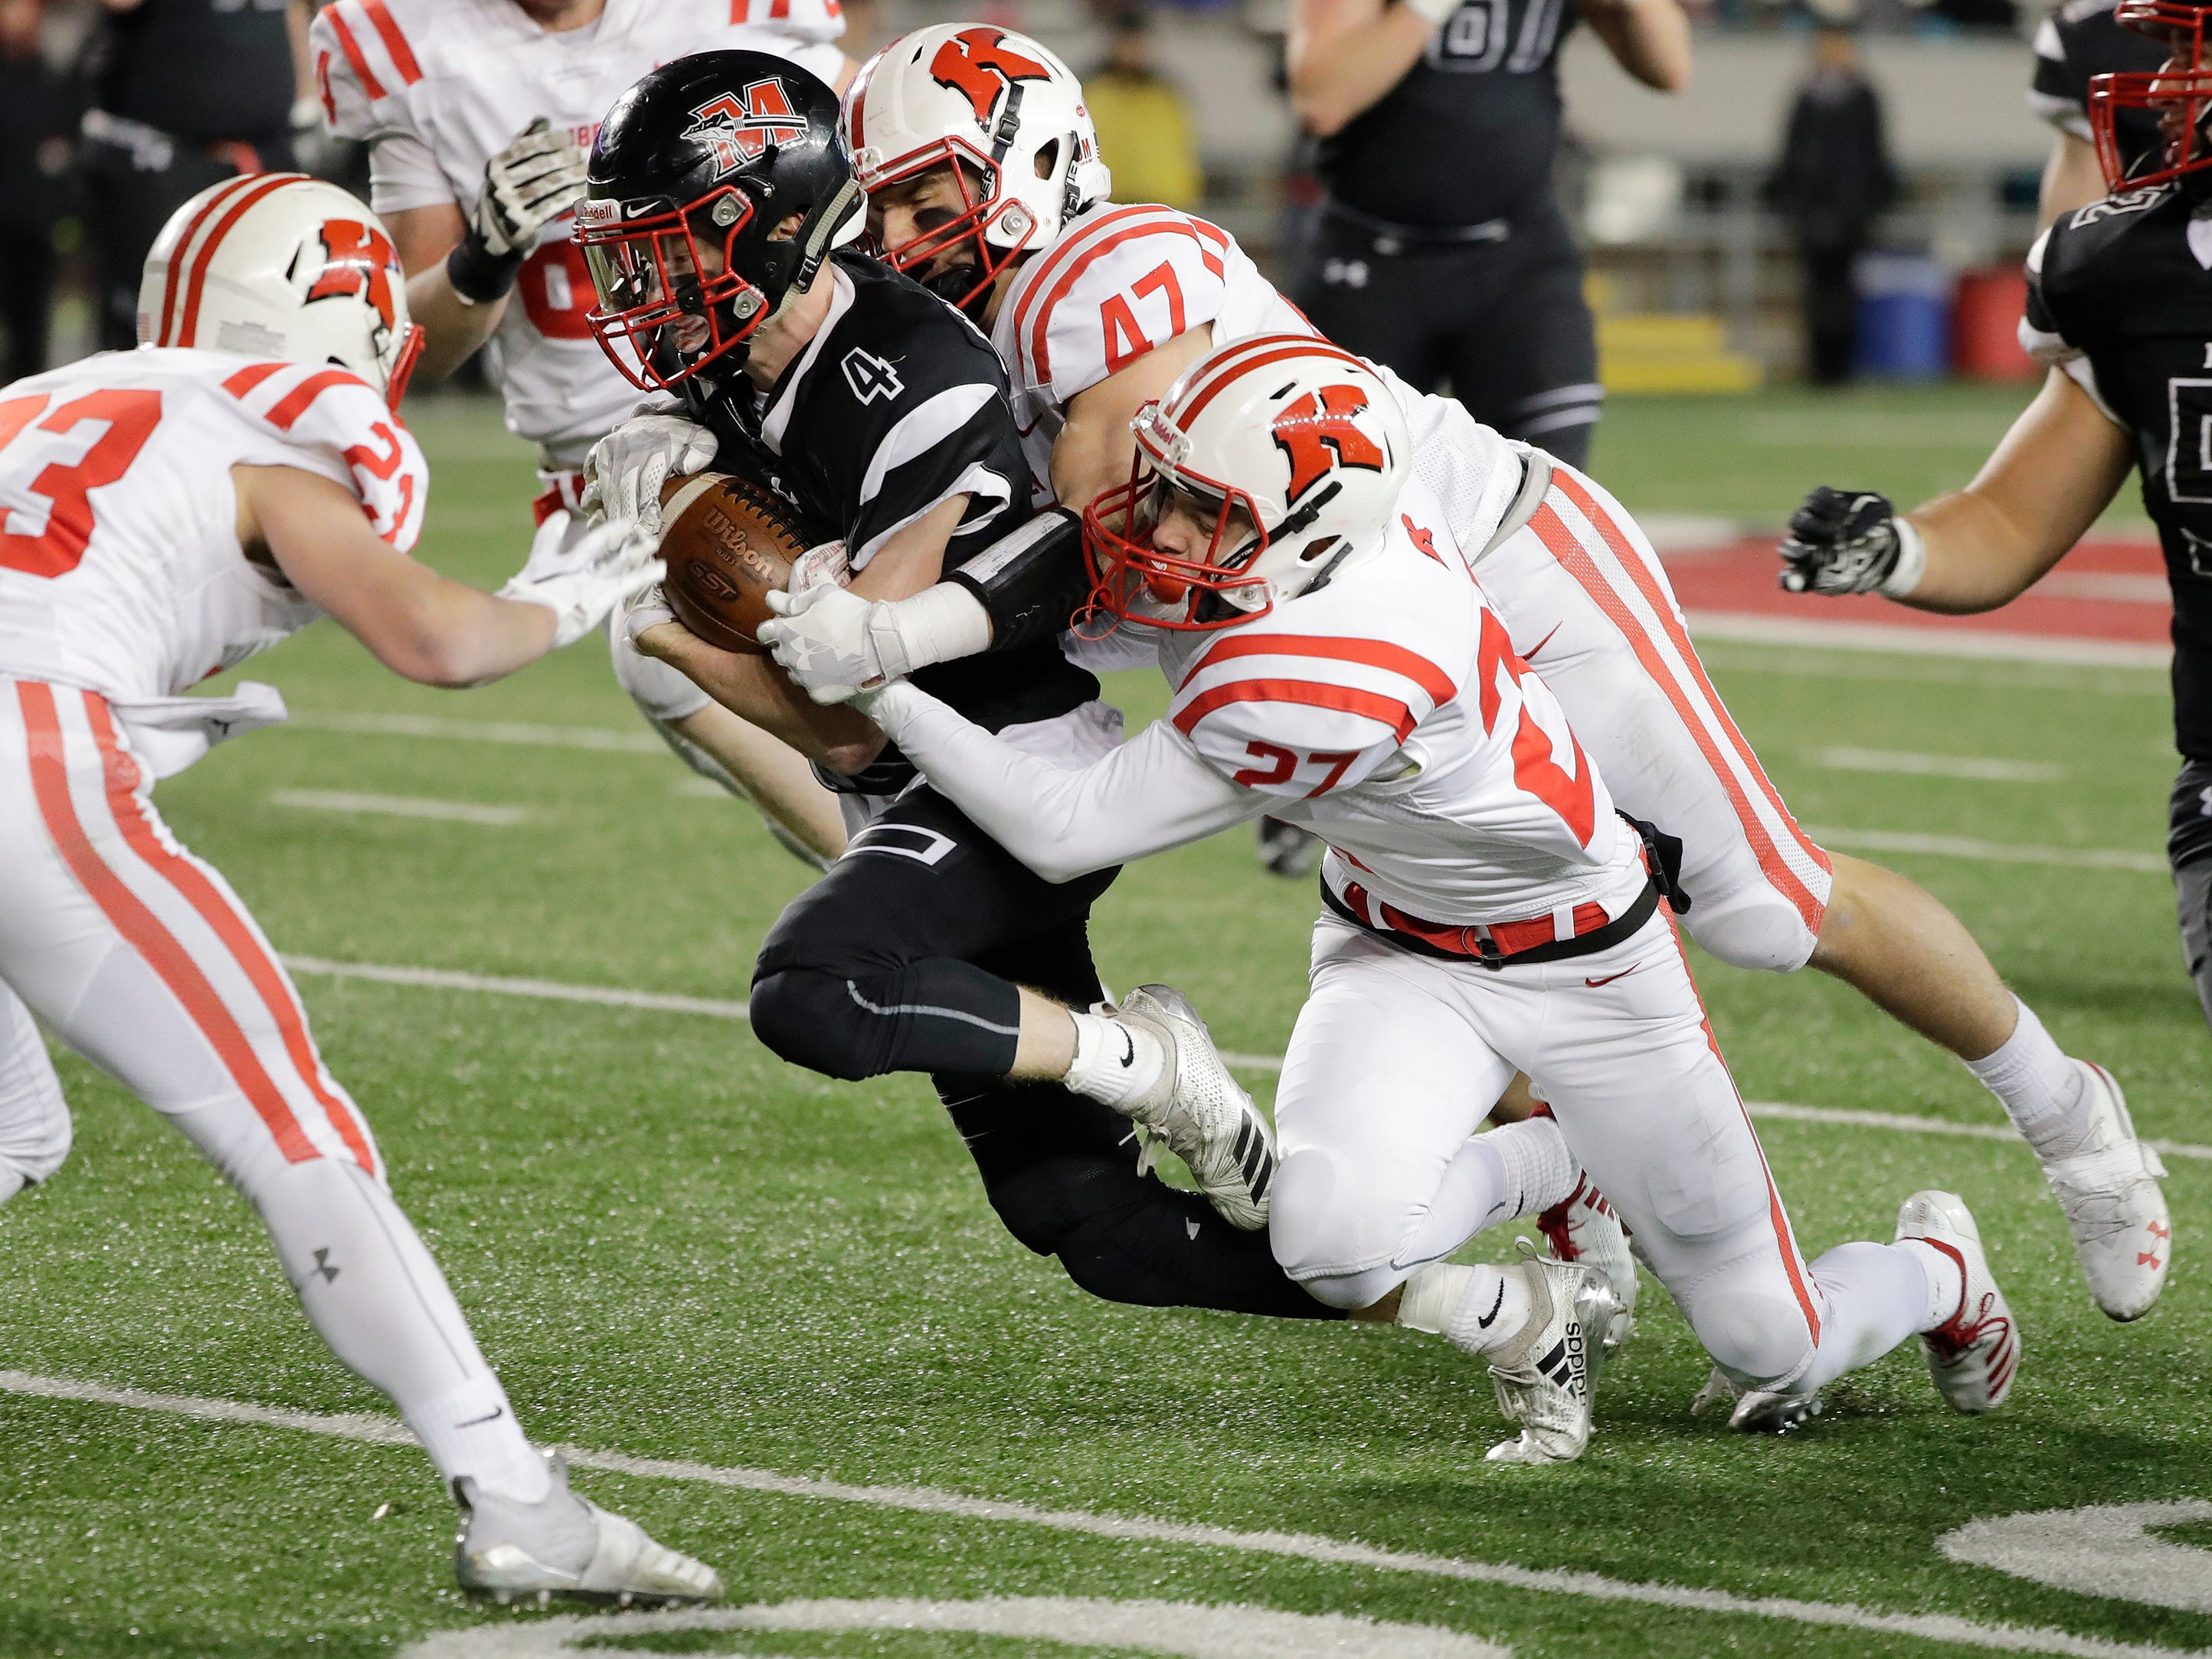 Muskego's RJ Bosshart (4) is tackled by a group of Kimberly players in the WIAA Division 1 championship game at Camp Randall Stadium on Friday, November 16, 2018 in Madison, Wis.